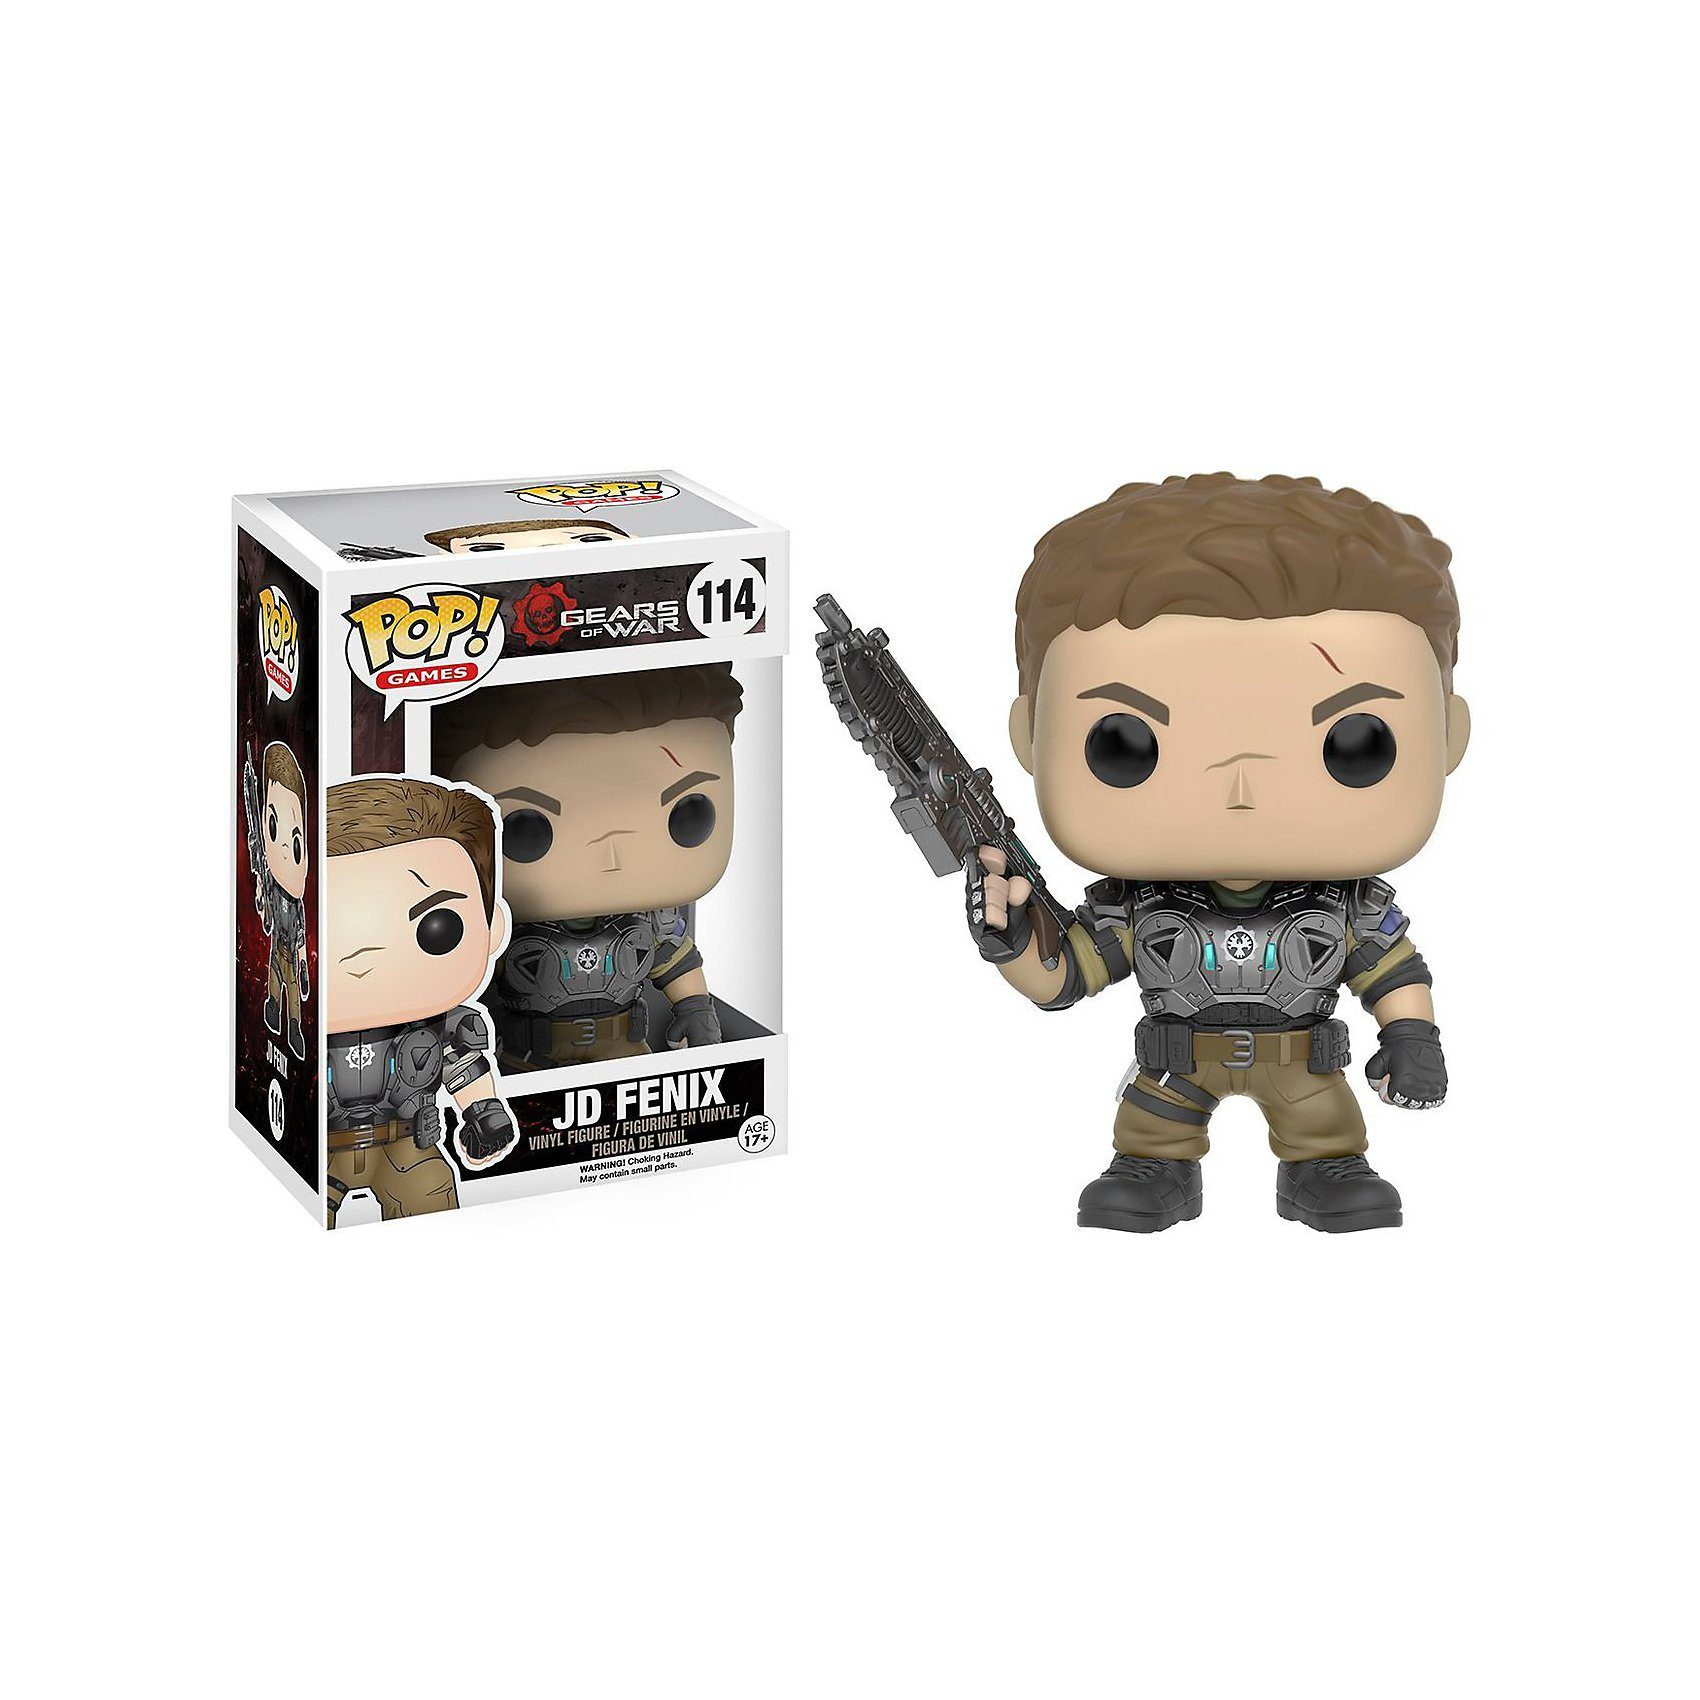 Funko POP! Vinyl Sammelfigur: Gears of War JD Fenix